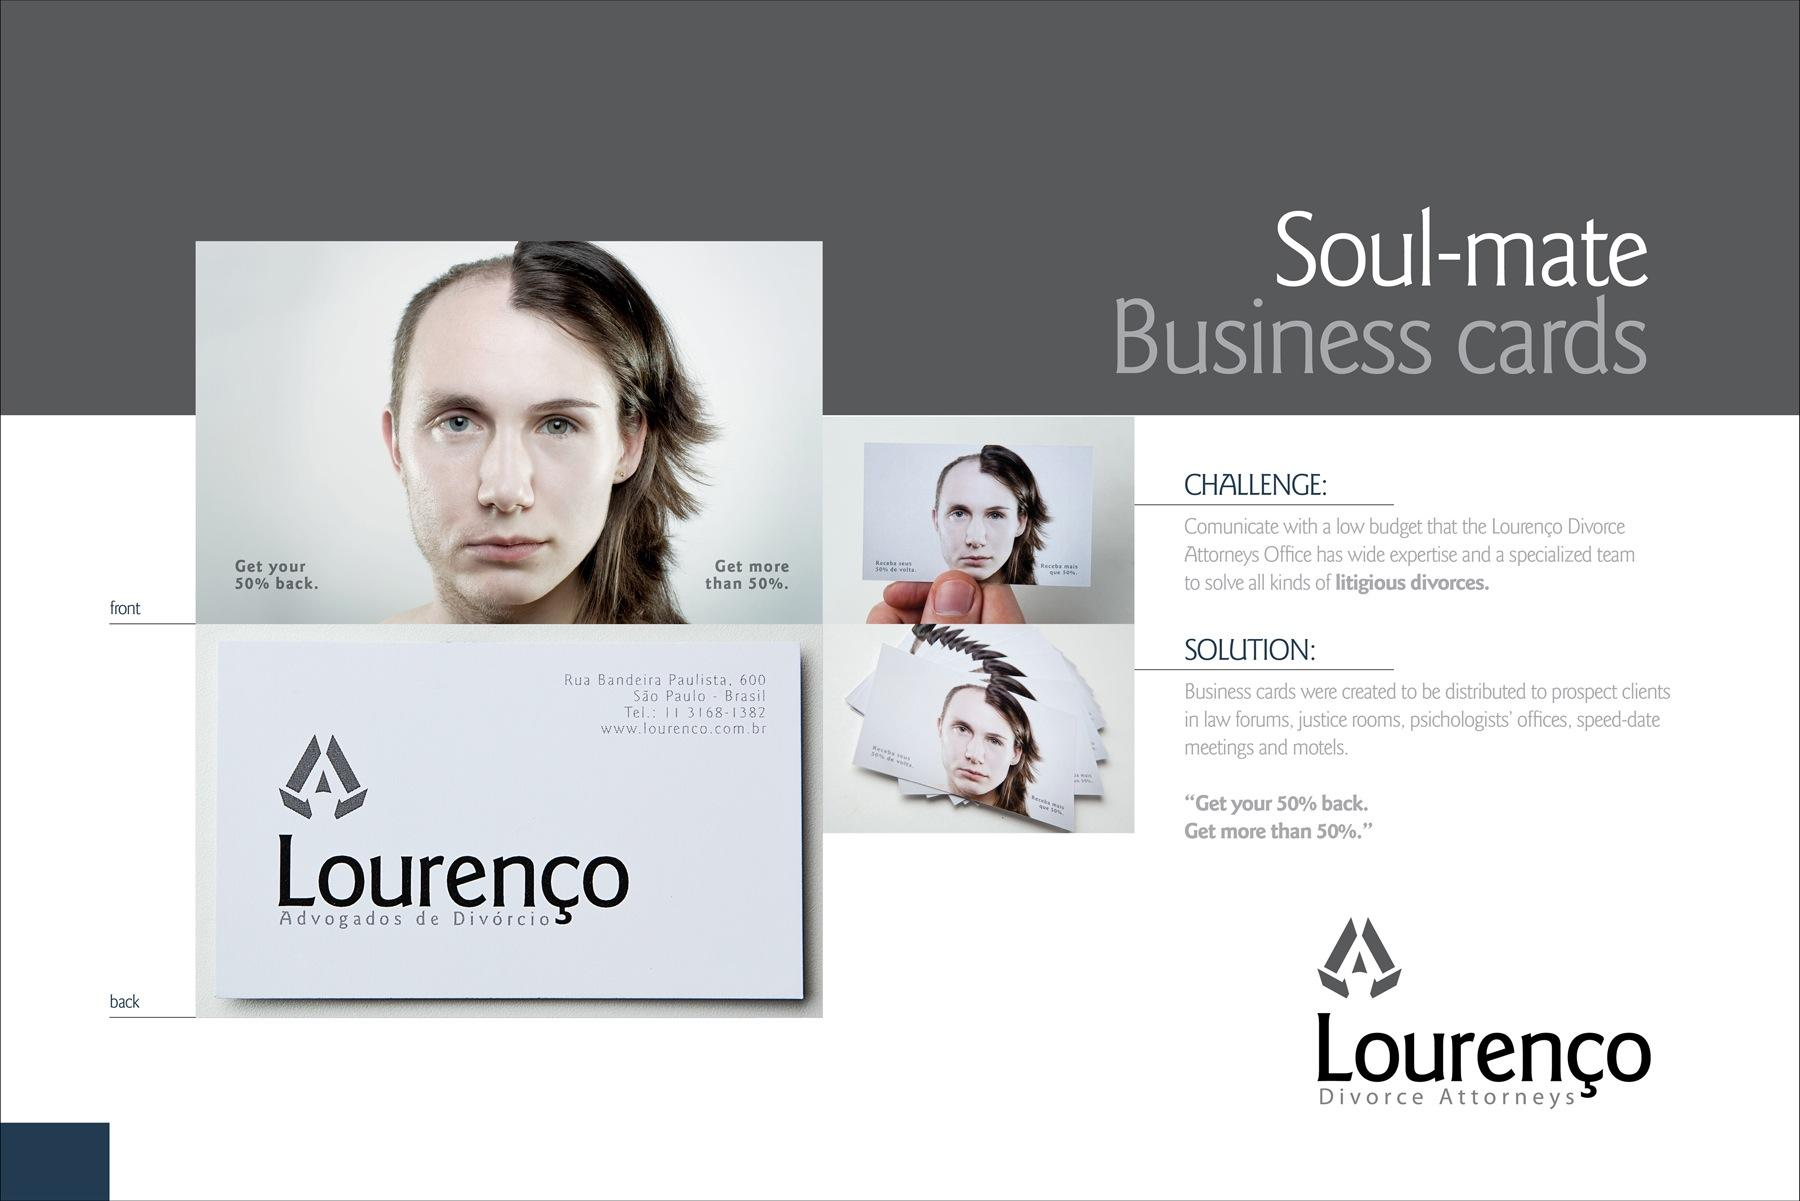 Lourenco Divorce Attorneys Direct Ad -  Soul-Mate Business Cards